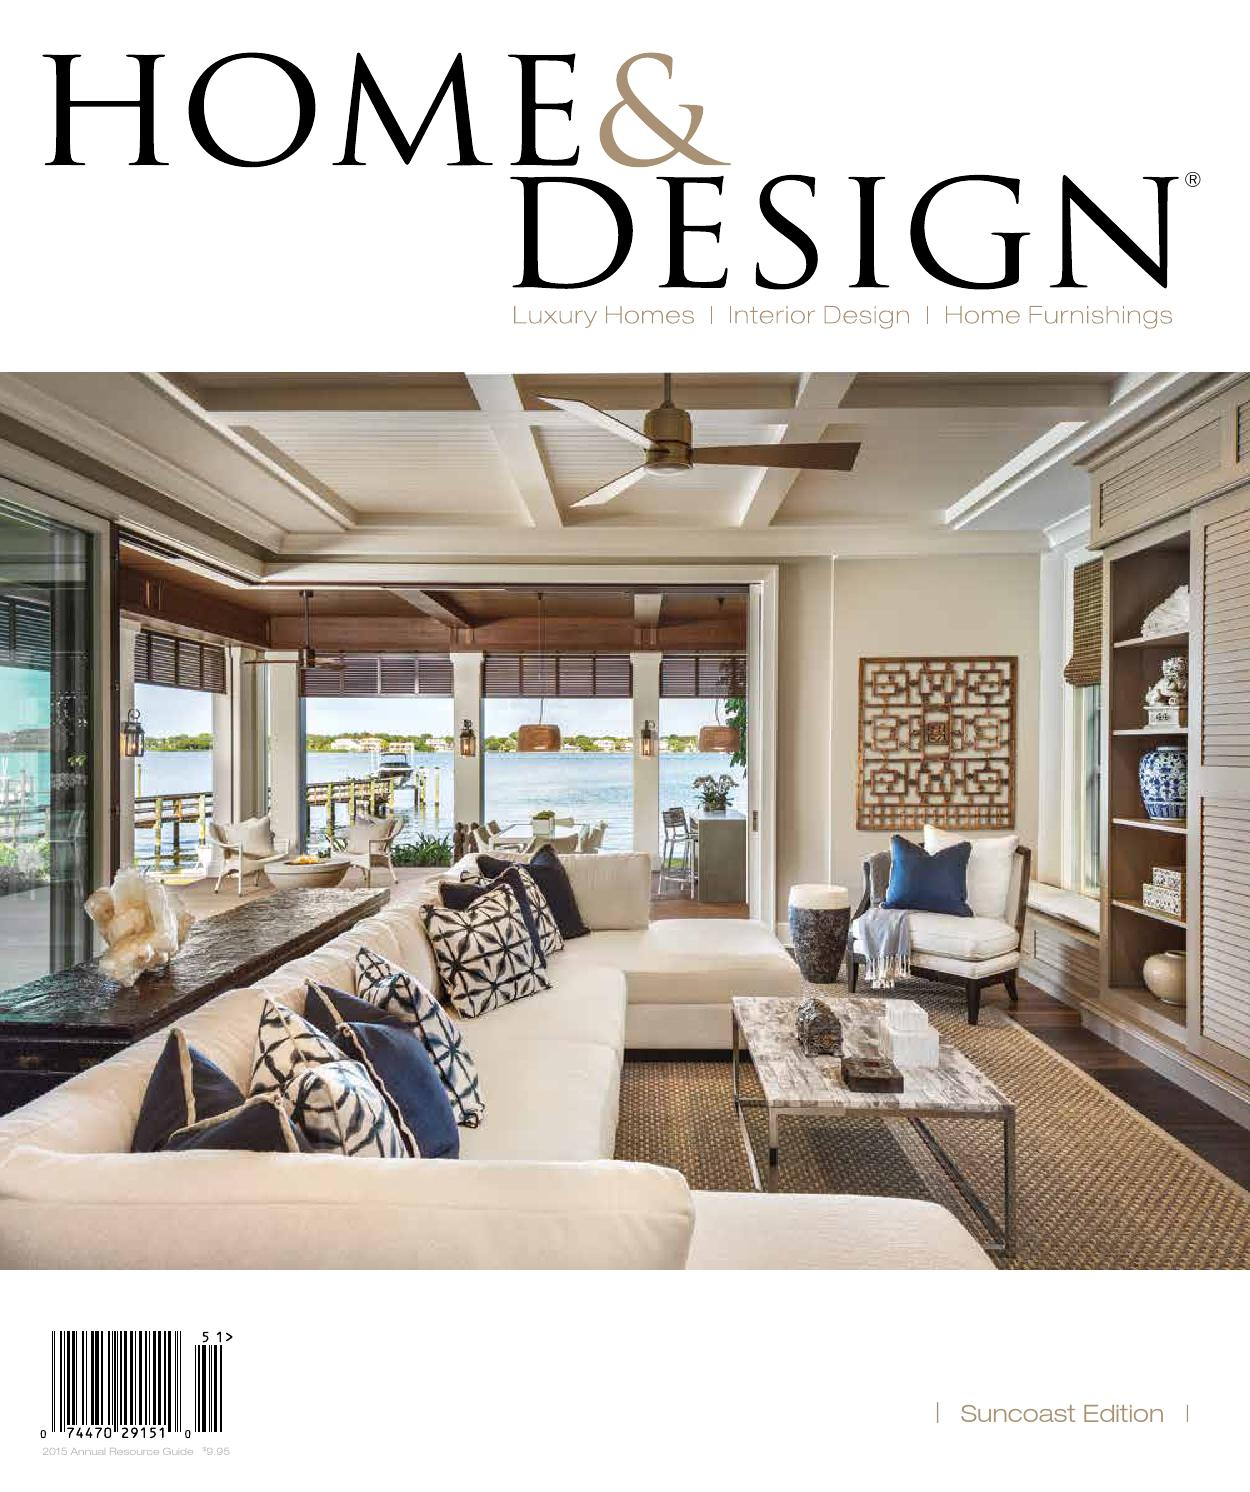 Home design magazine annual resource guide 2015 for Home architecture and design